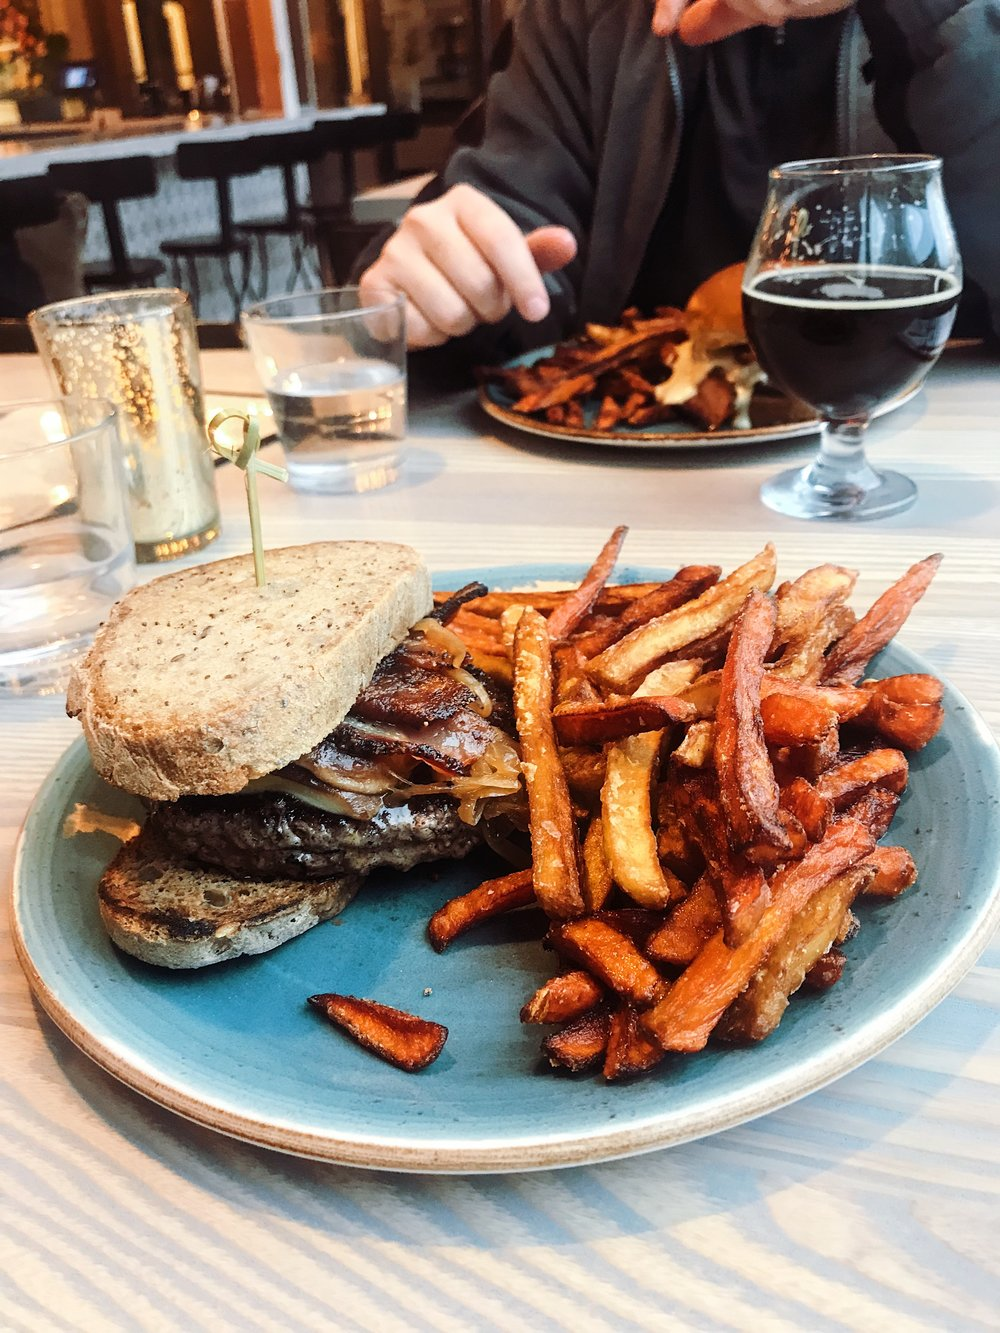 If you have not been to The Garden Table off Mass Ave in Indy, you should try it! Pictured is a gluten-free burger with flash-fried carrots and parsnips!